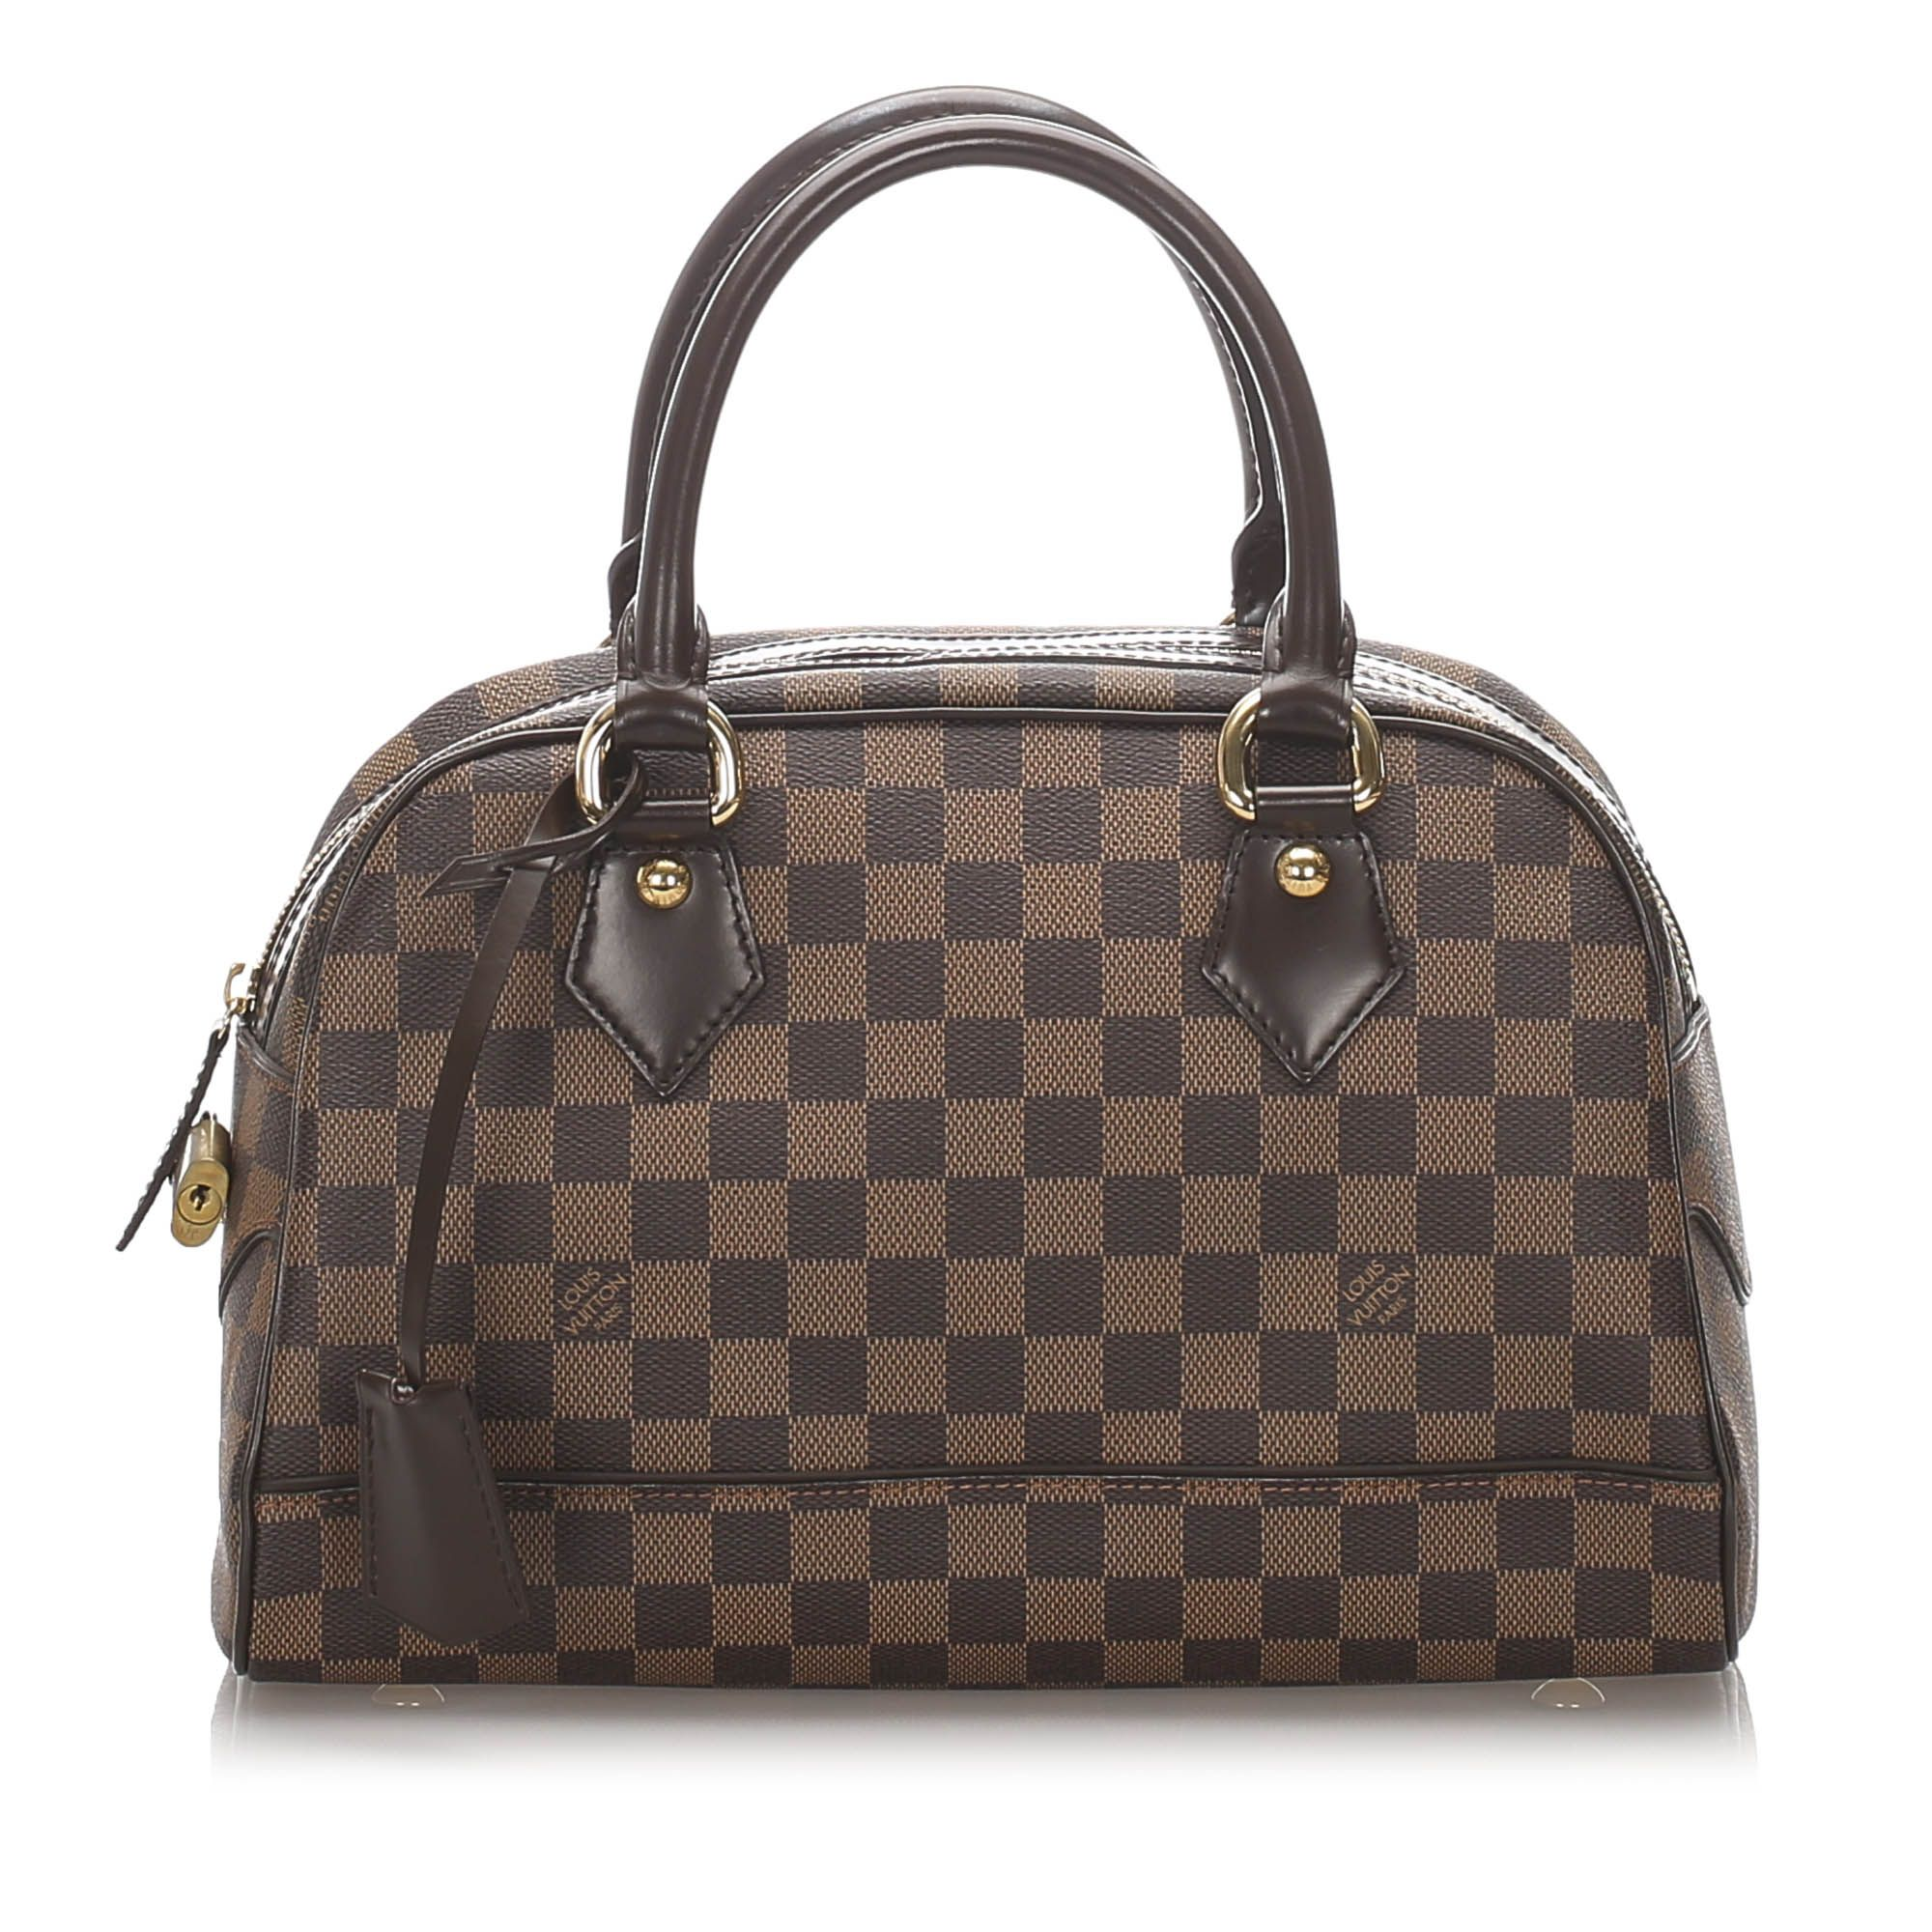 Vintage Louis Vuitton Damier Ebene Duomo Brown